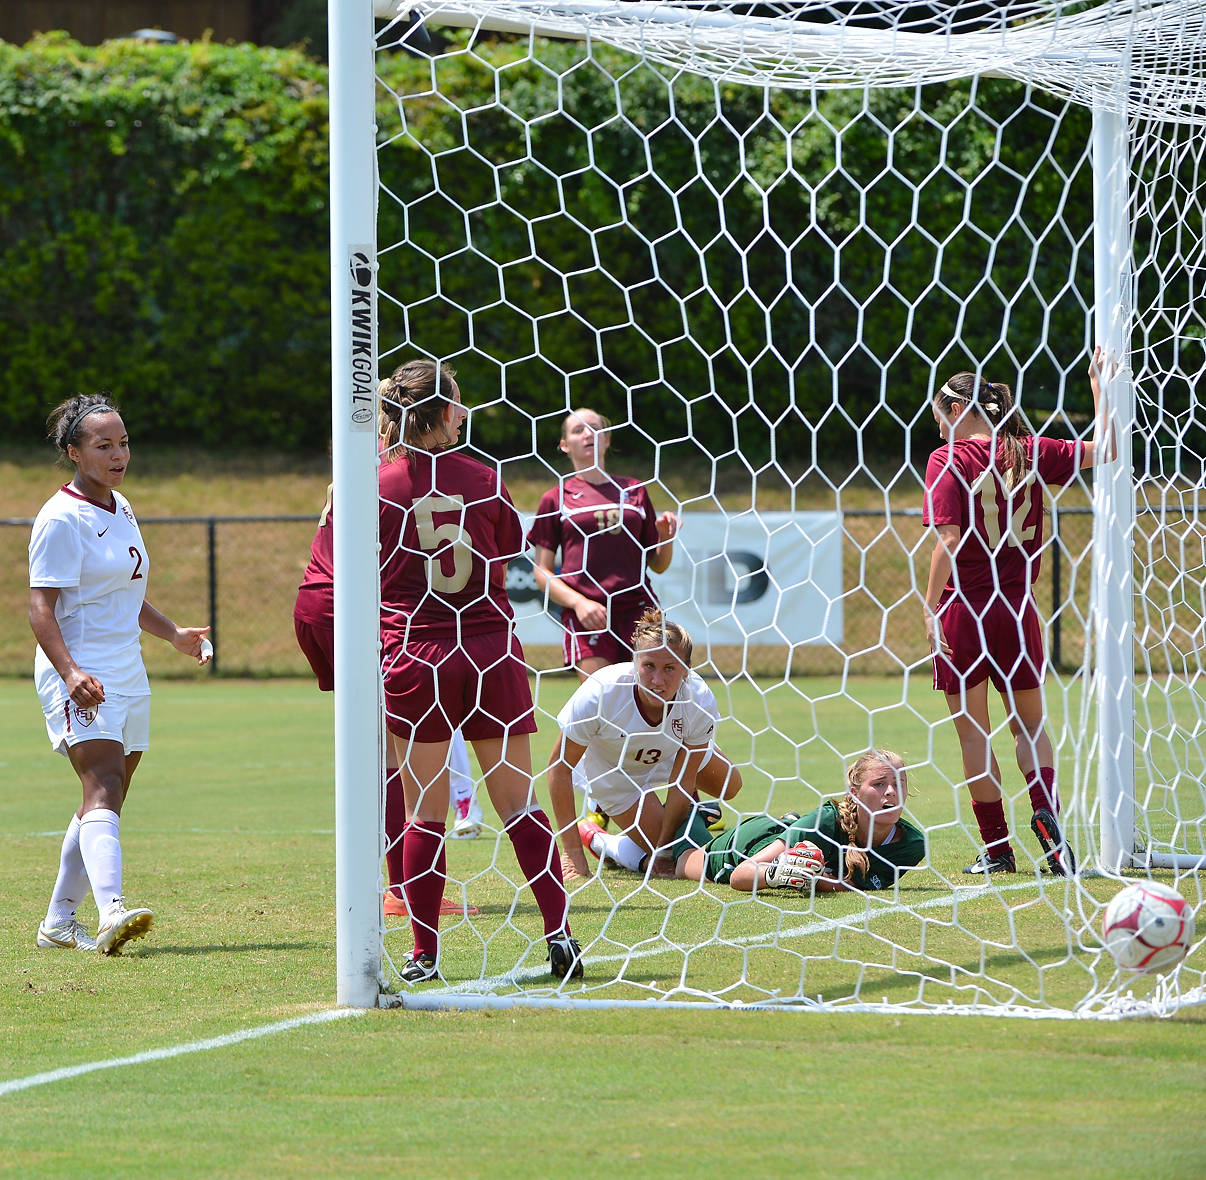 The completion of Grubka's goal to give FSU a 1-0 lead in the first half.